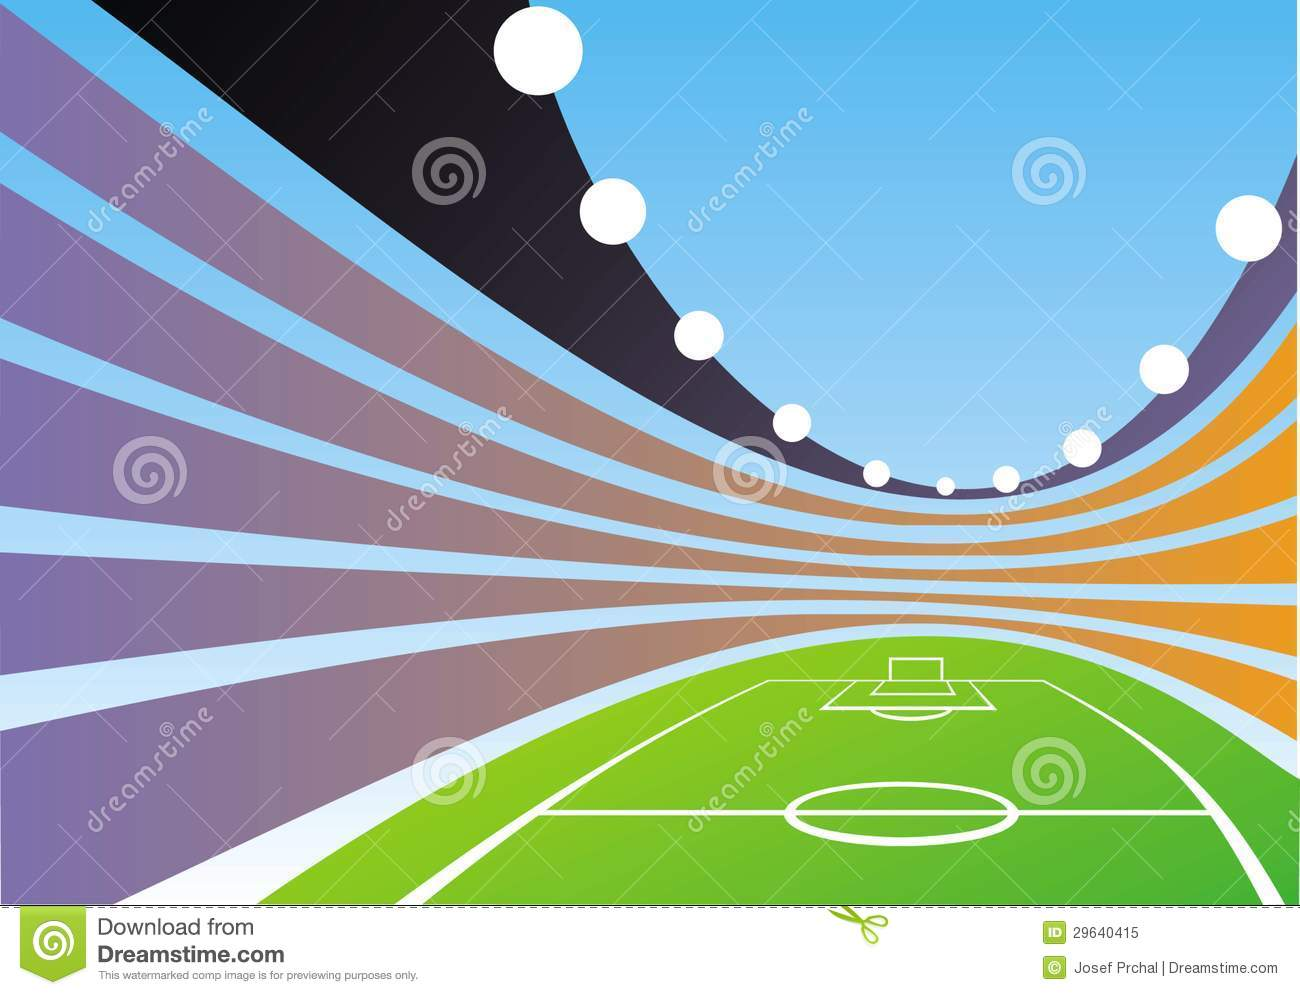 Abstract Sports Background Royalty Free Stock Image: Abstract Stadion Background Royalty Free Stock Photo